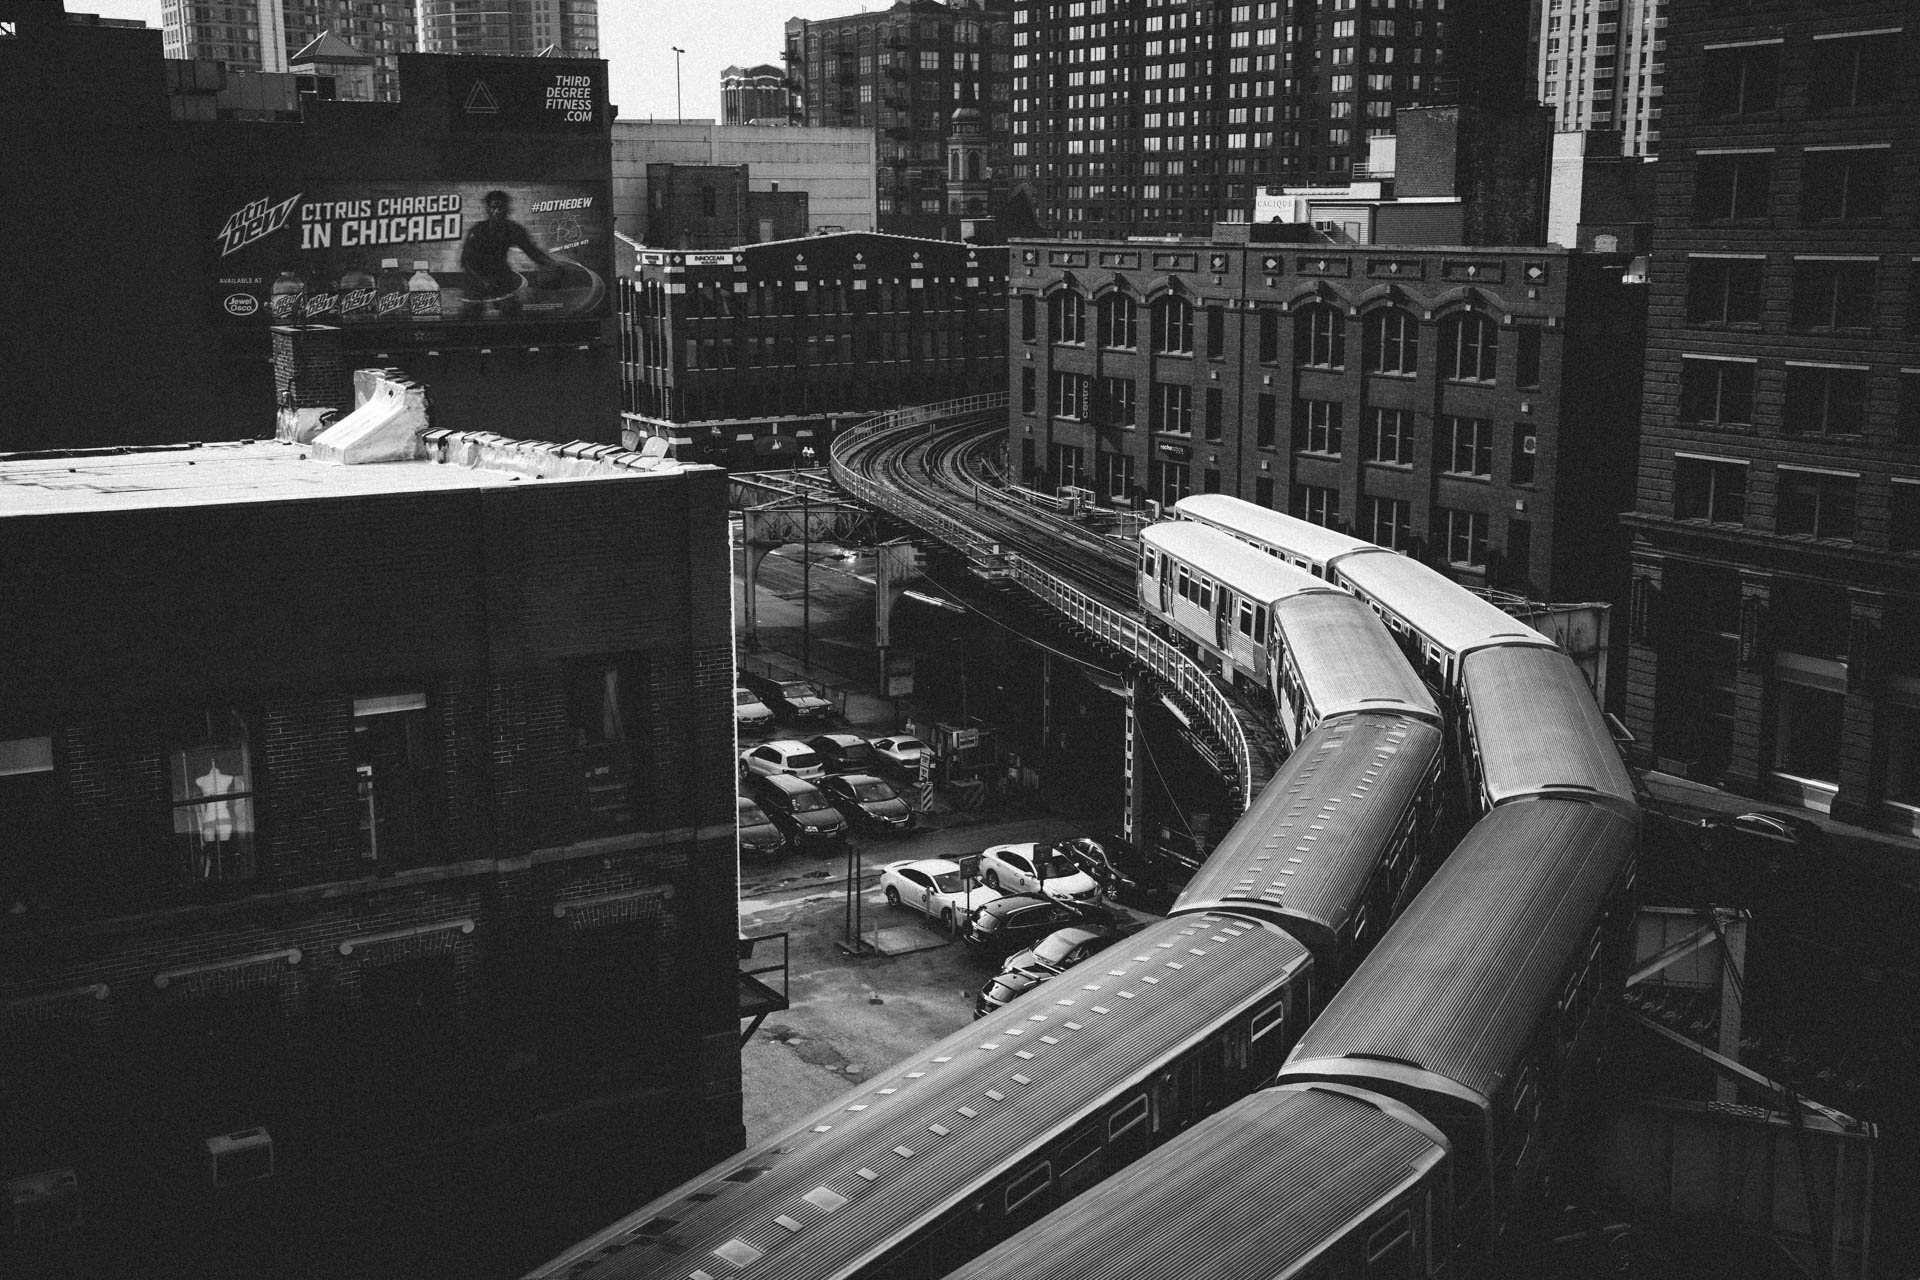 cta_side_by_side_s_curve_merchandise_mart_6520untitled